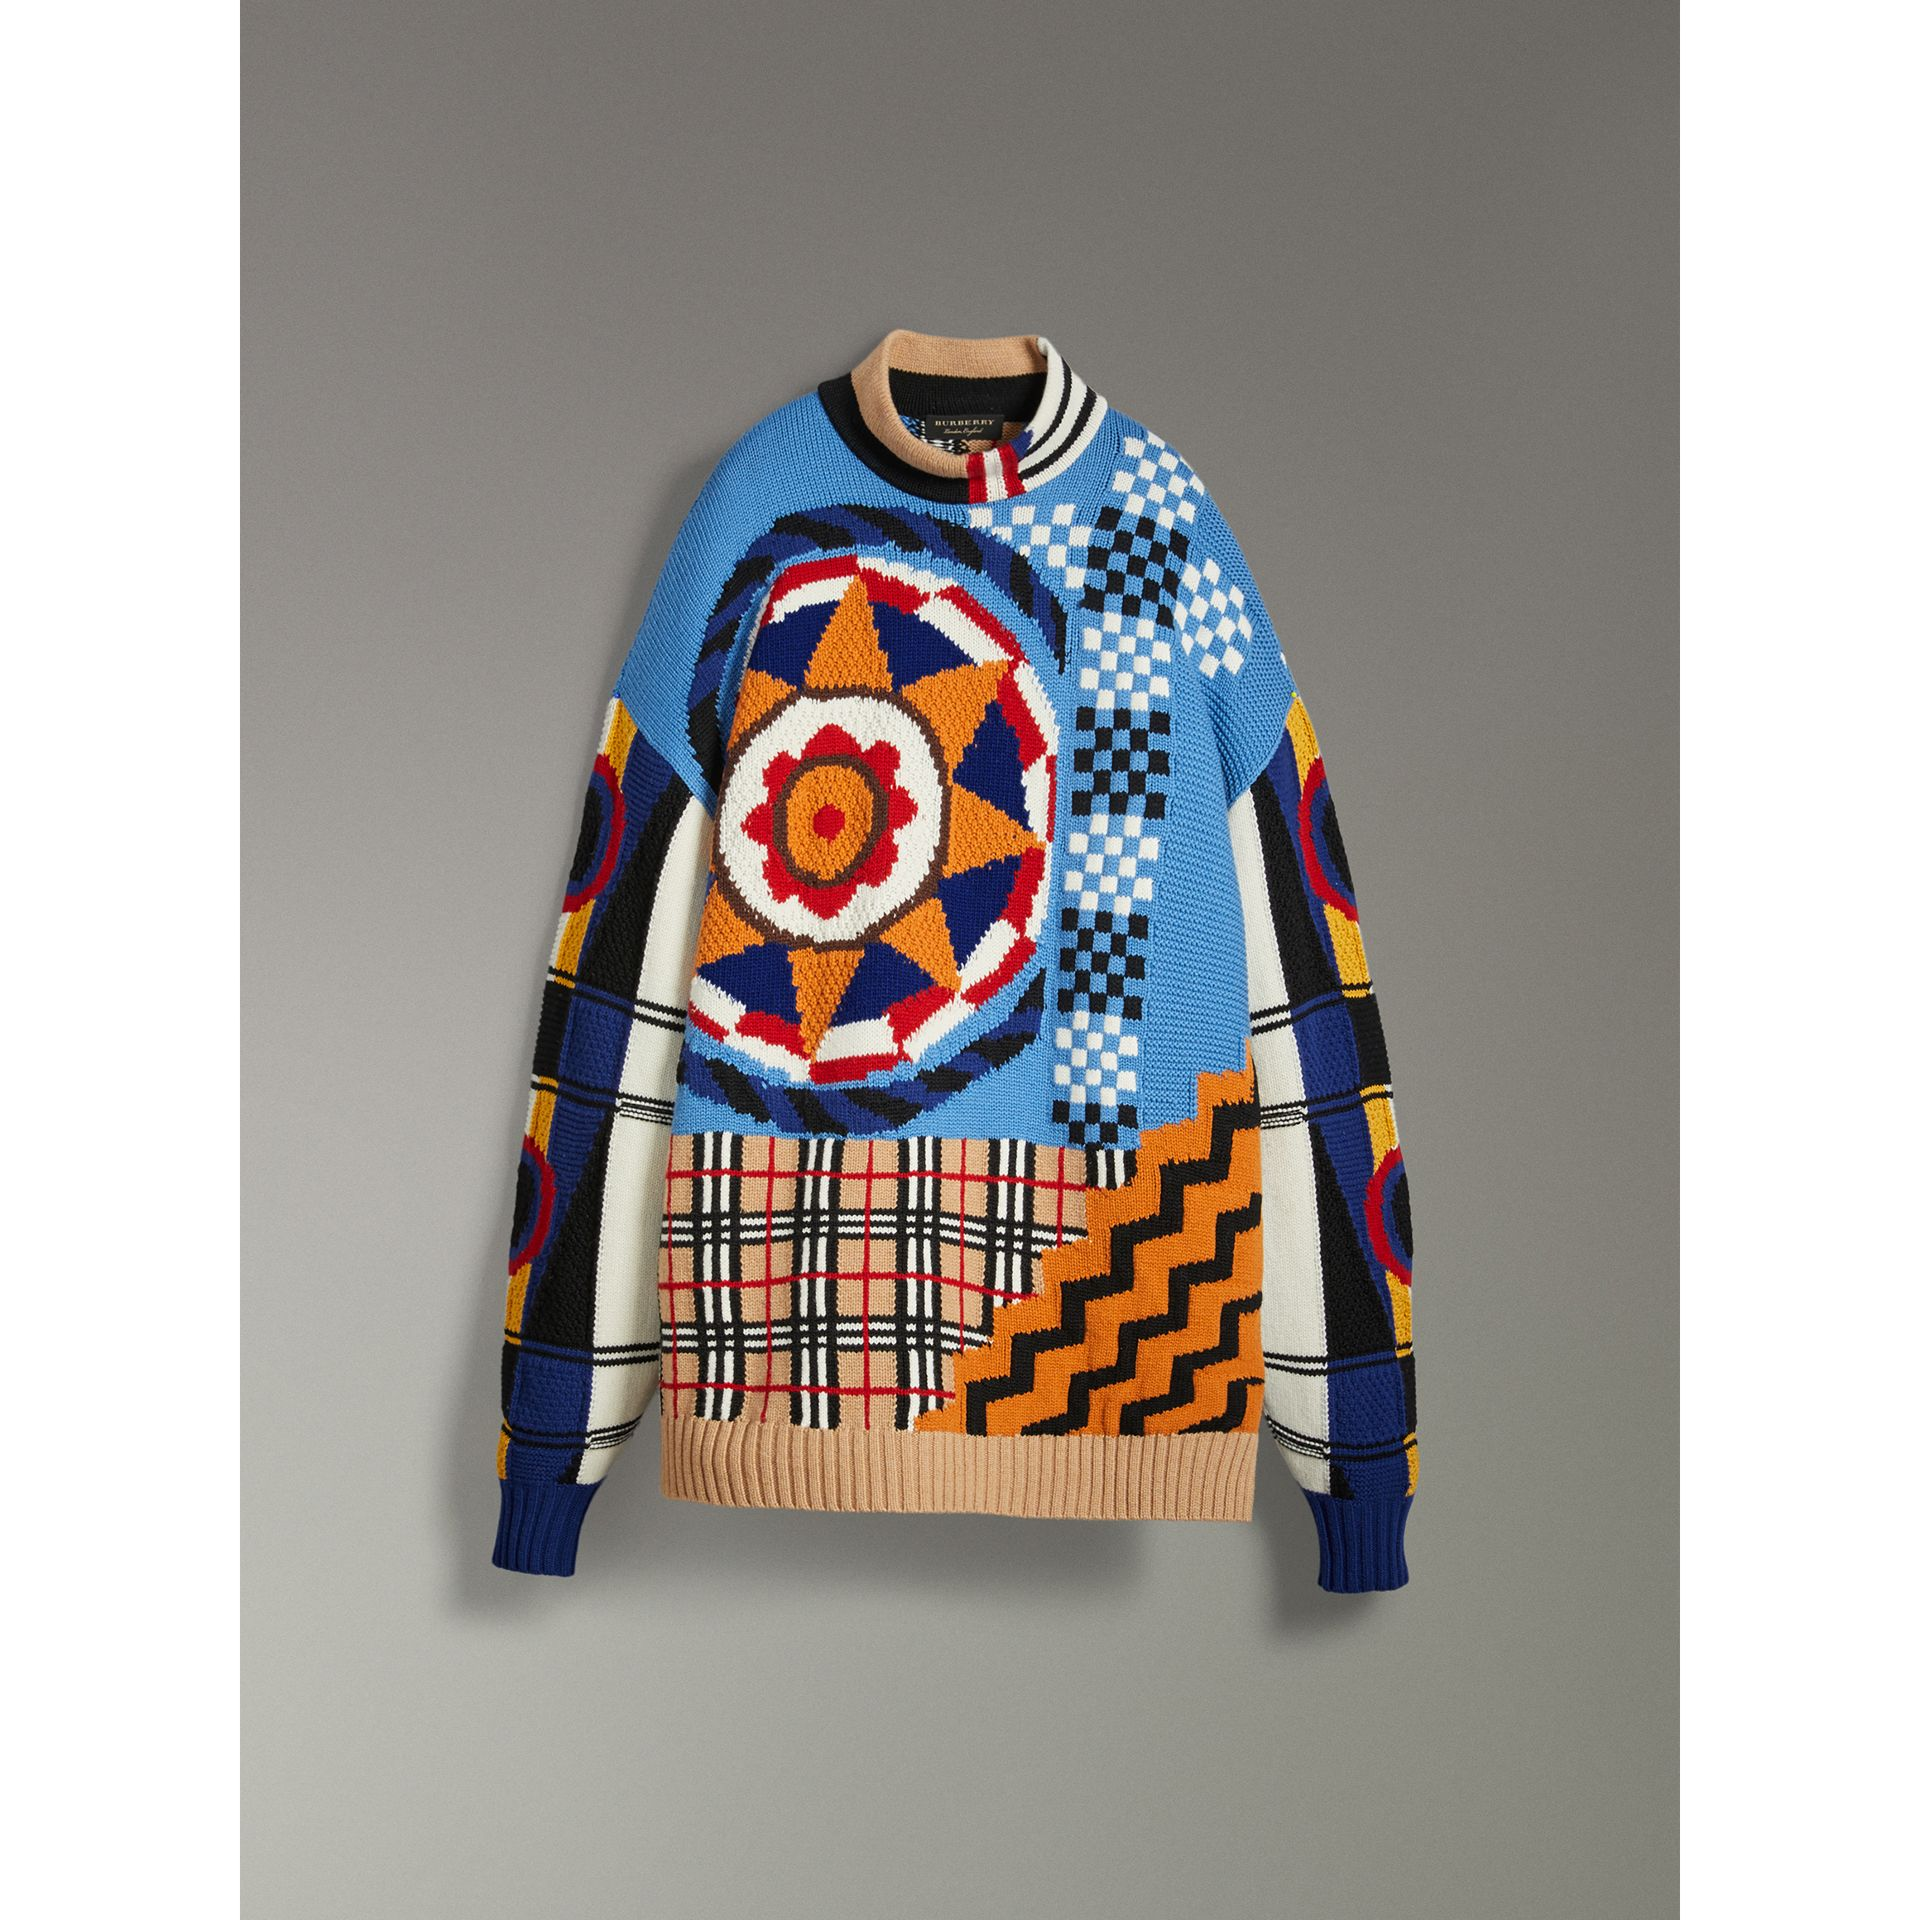 Wool Cashmere Cotton Graphic Intarsia Sweater in Multicolour | Burberry United Kingdom - gallery image 3